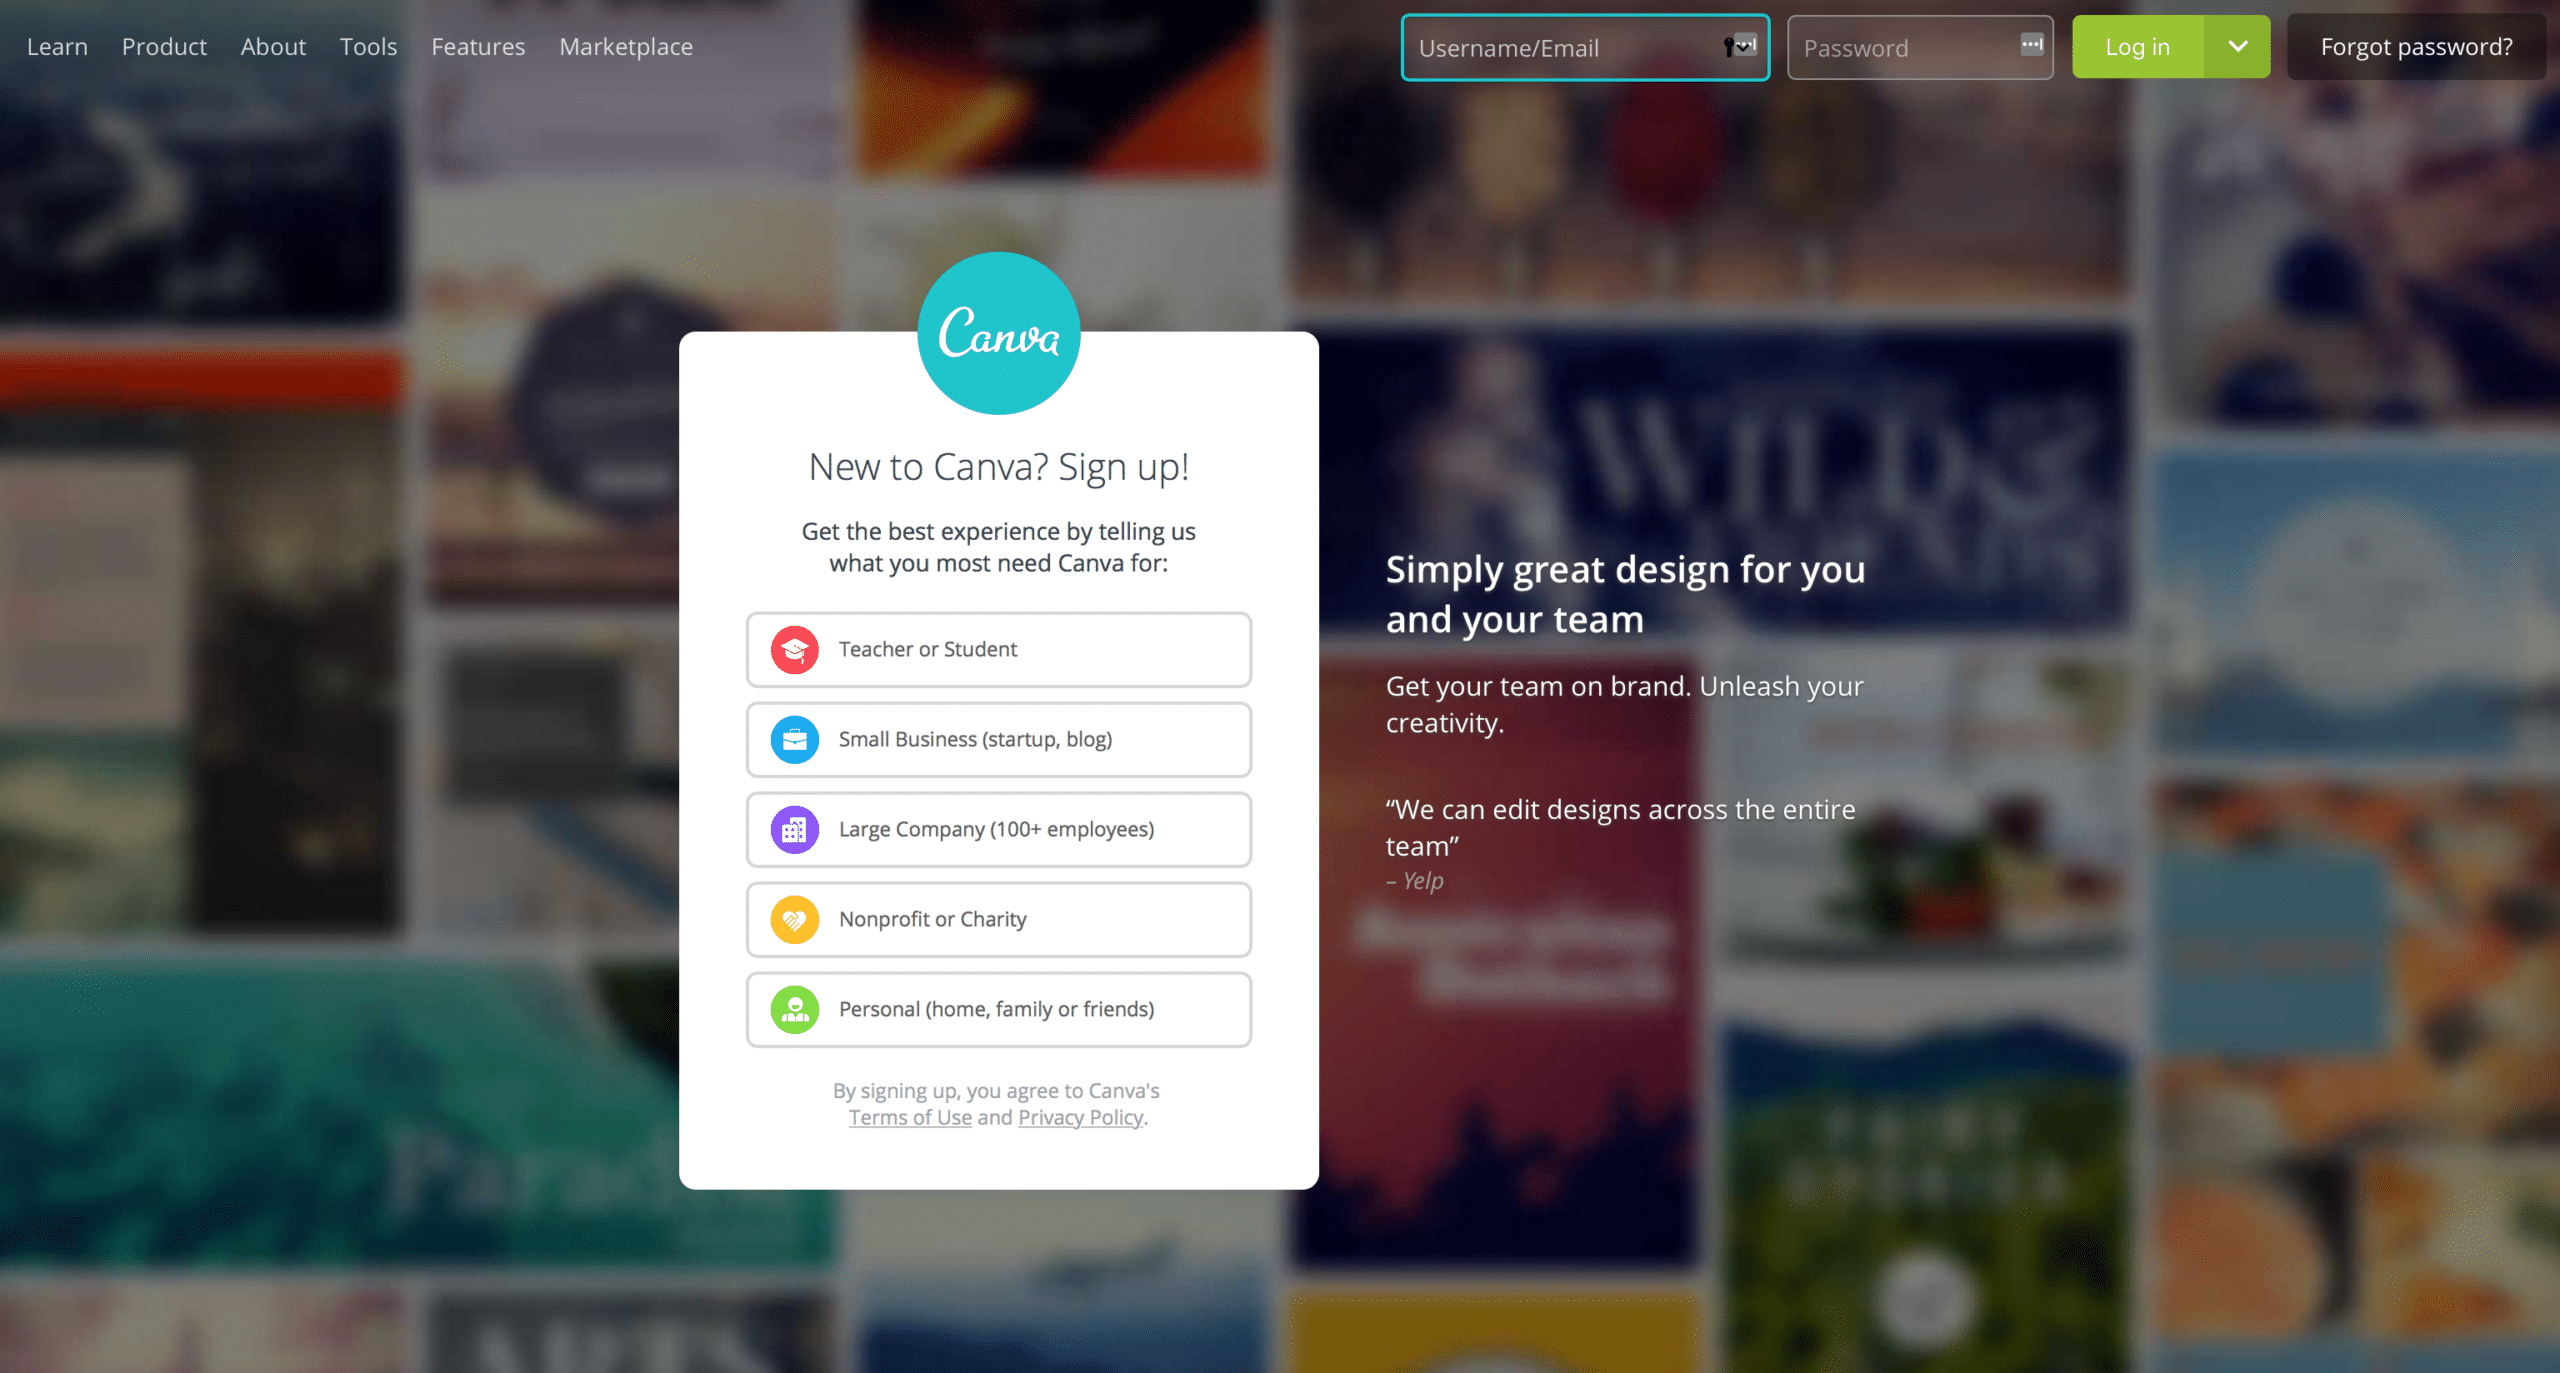 New to Canva?